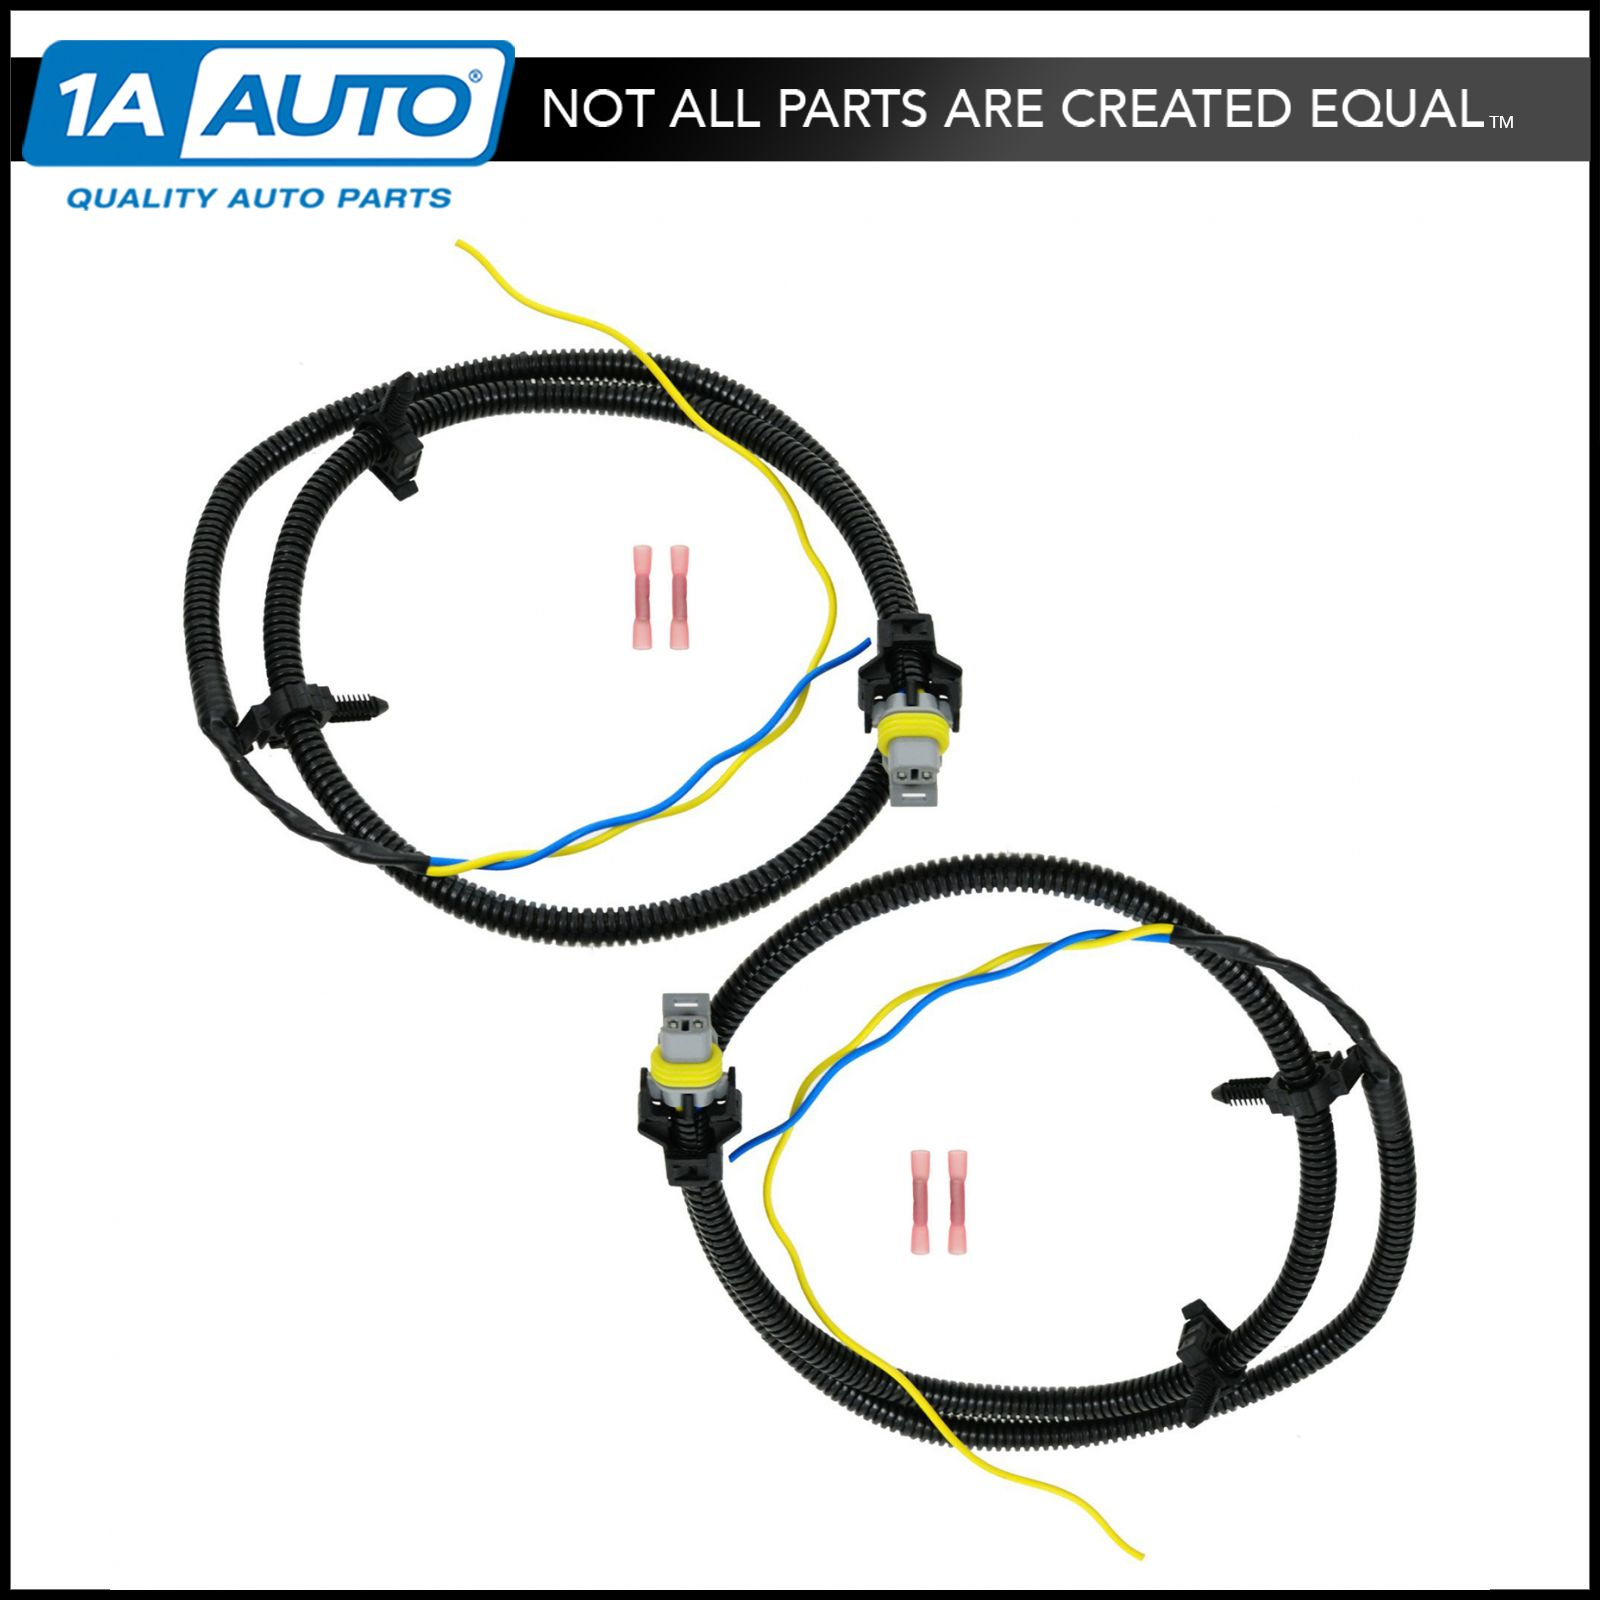 2005 Pontiac Sunfire Speed Sensor Wiring Harness Ebay Dorman Abs Front Pair For Chevy Cavalier 1200x1200